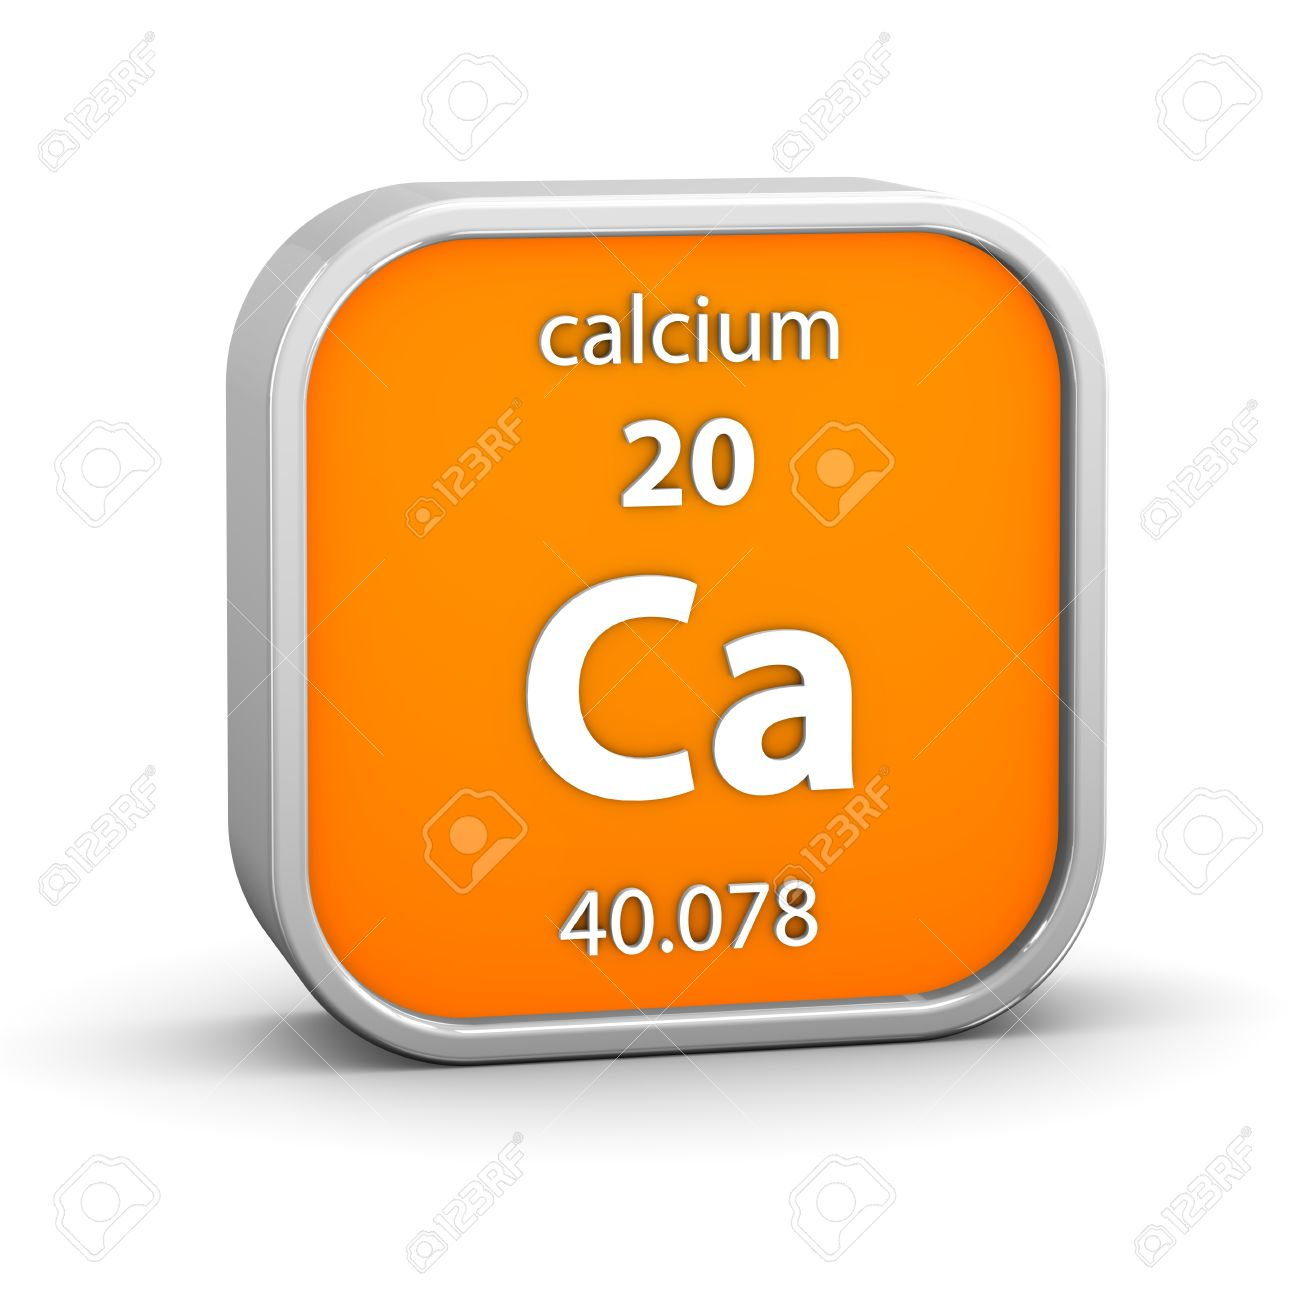 Calcium Material On The Periodic Table Part Of A Series Stock Photo